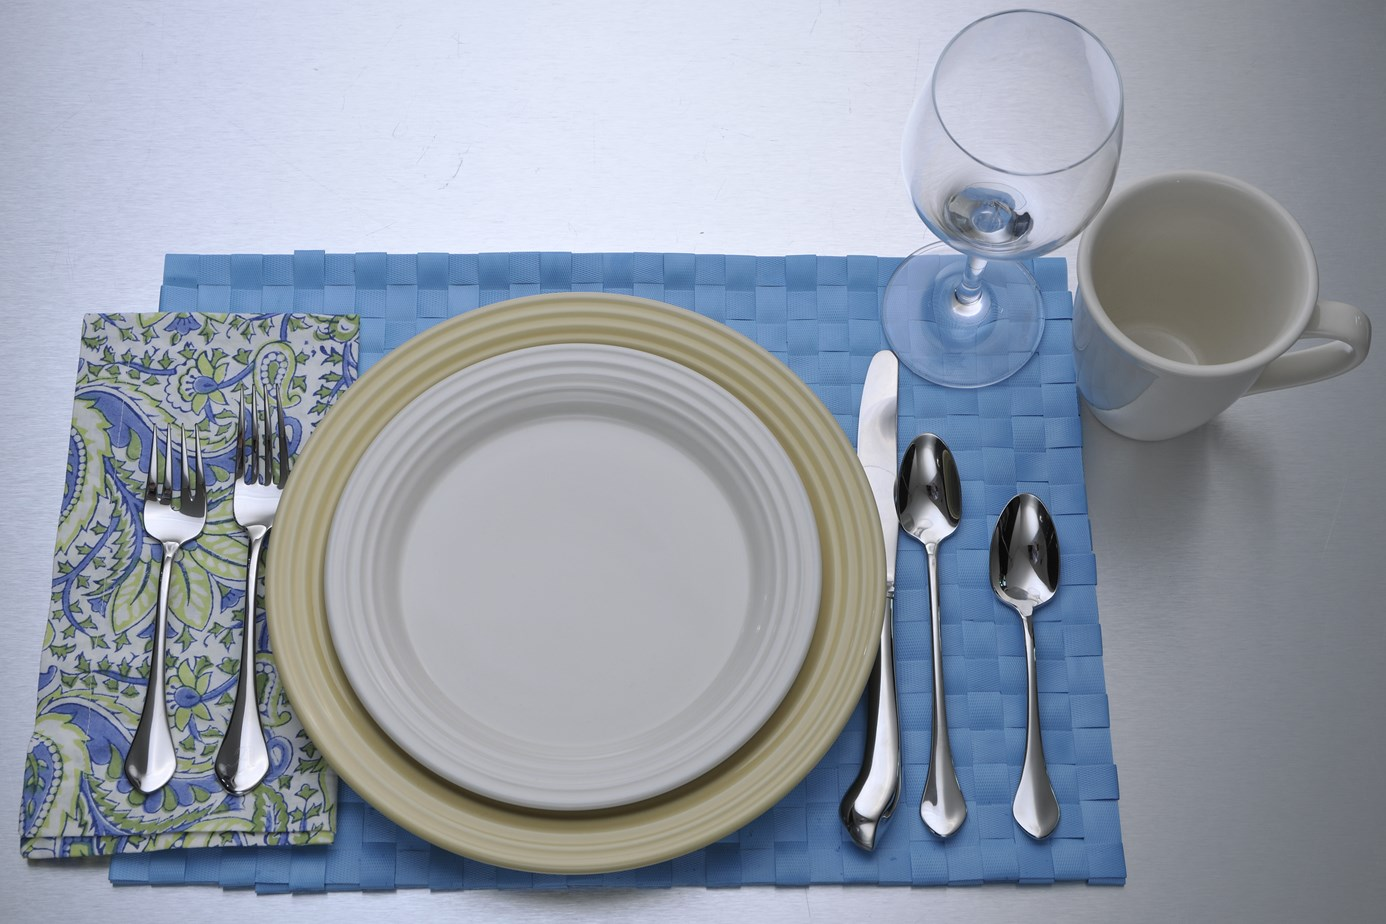 Choice morsels good eating monday table setting etiquette for Table utensils